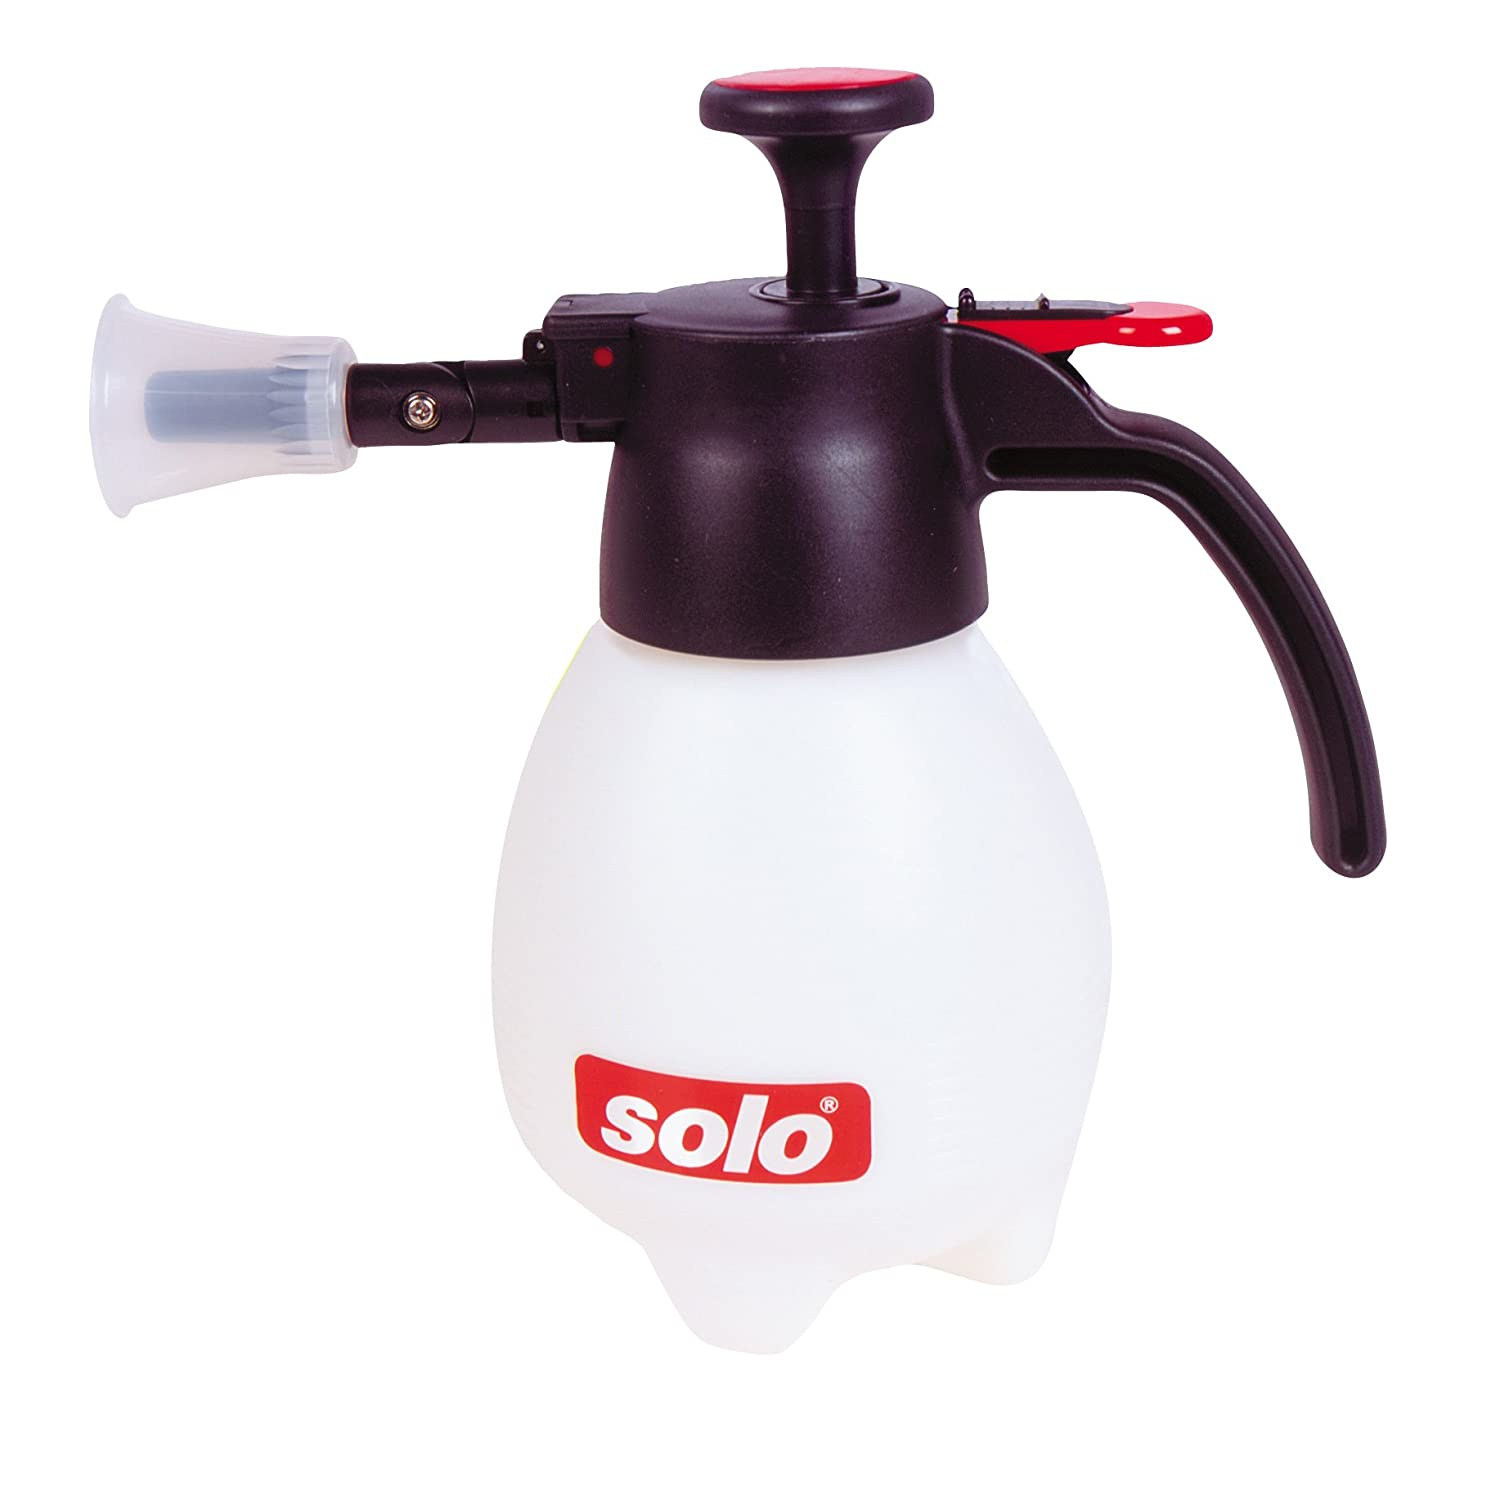 Solo 418 One-Hand Pressure Sprayer, 1-Liter